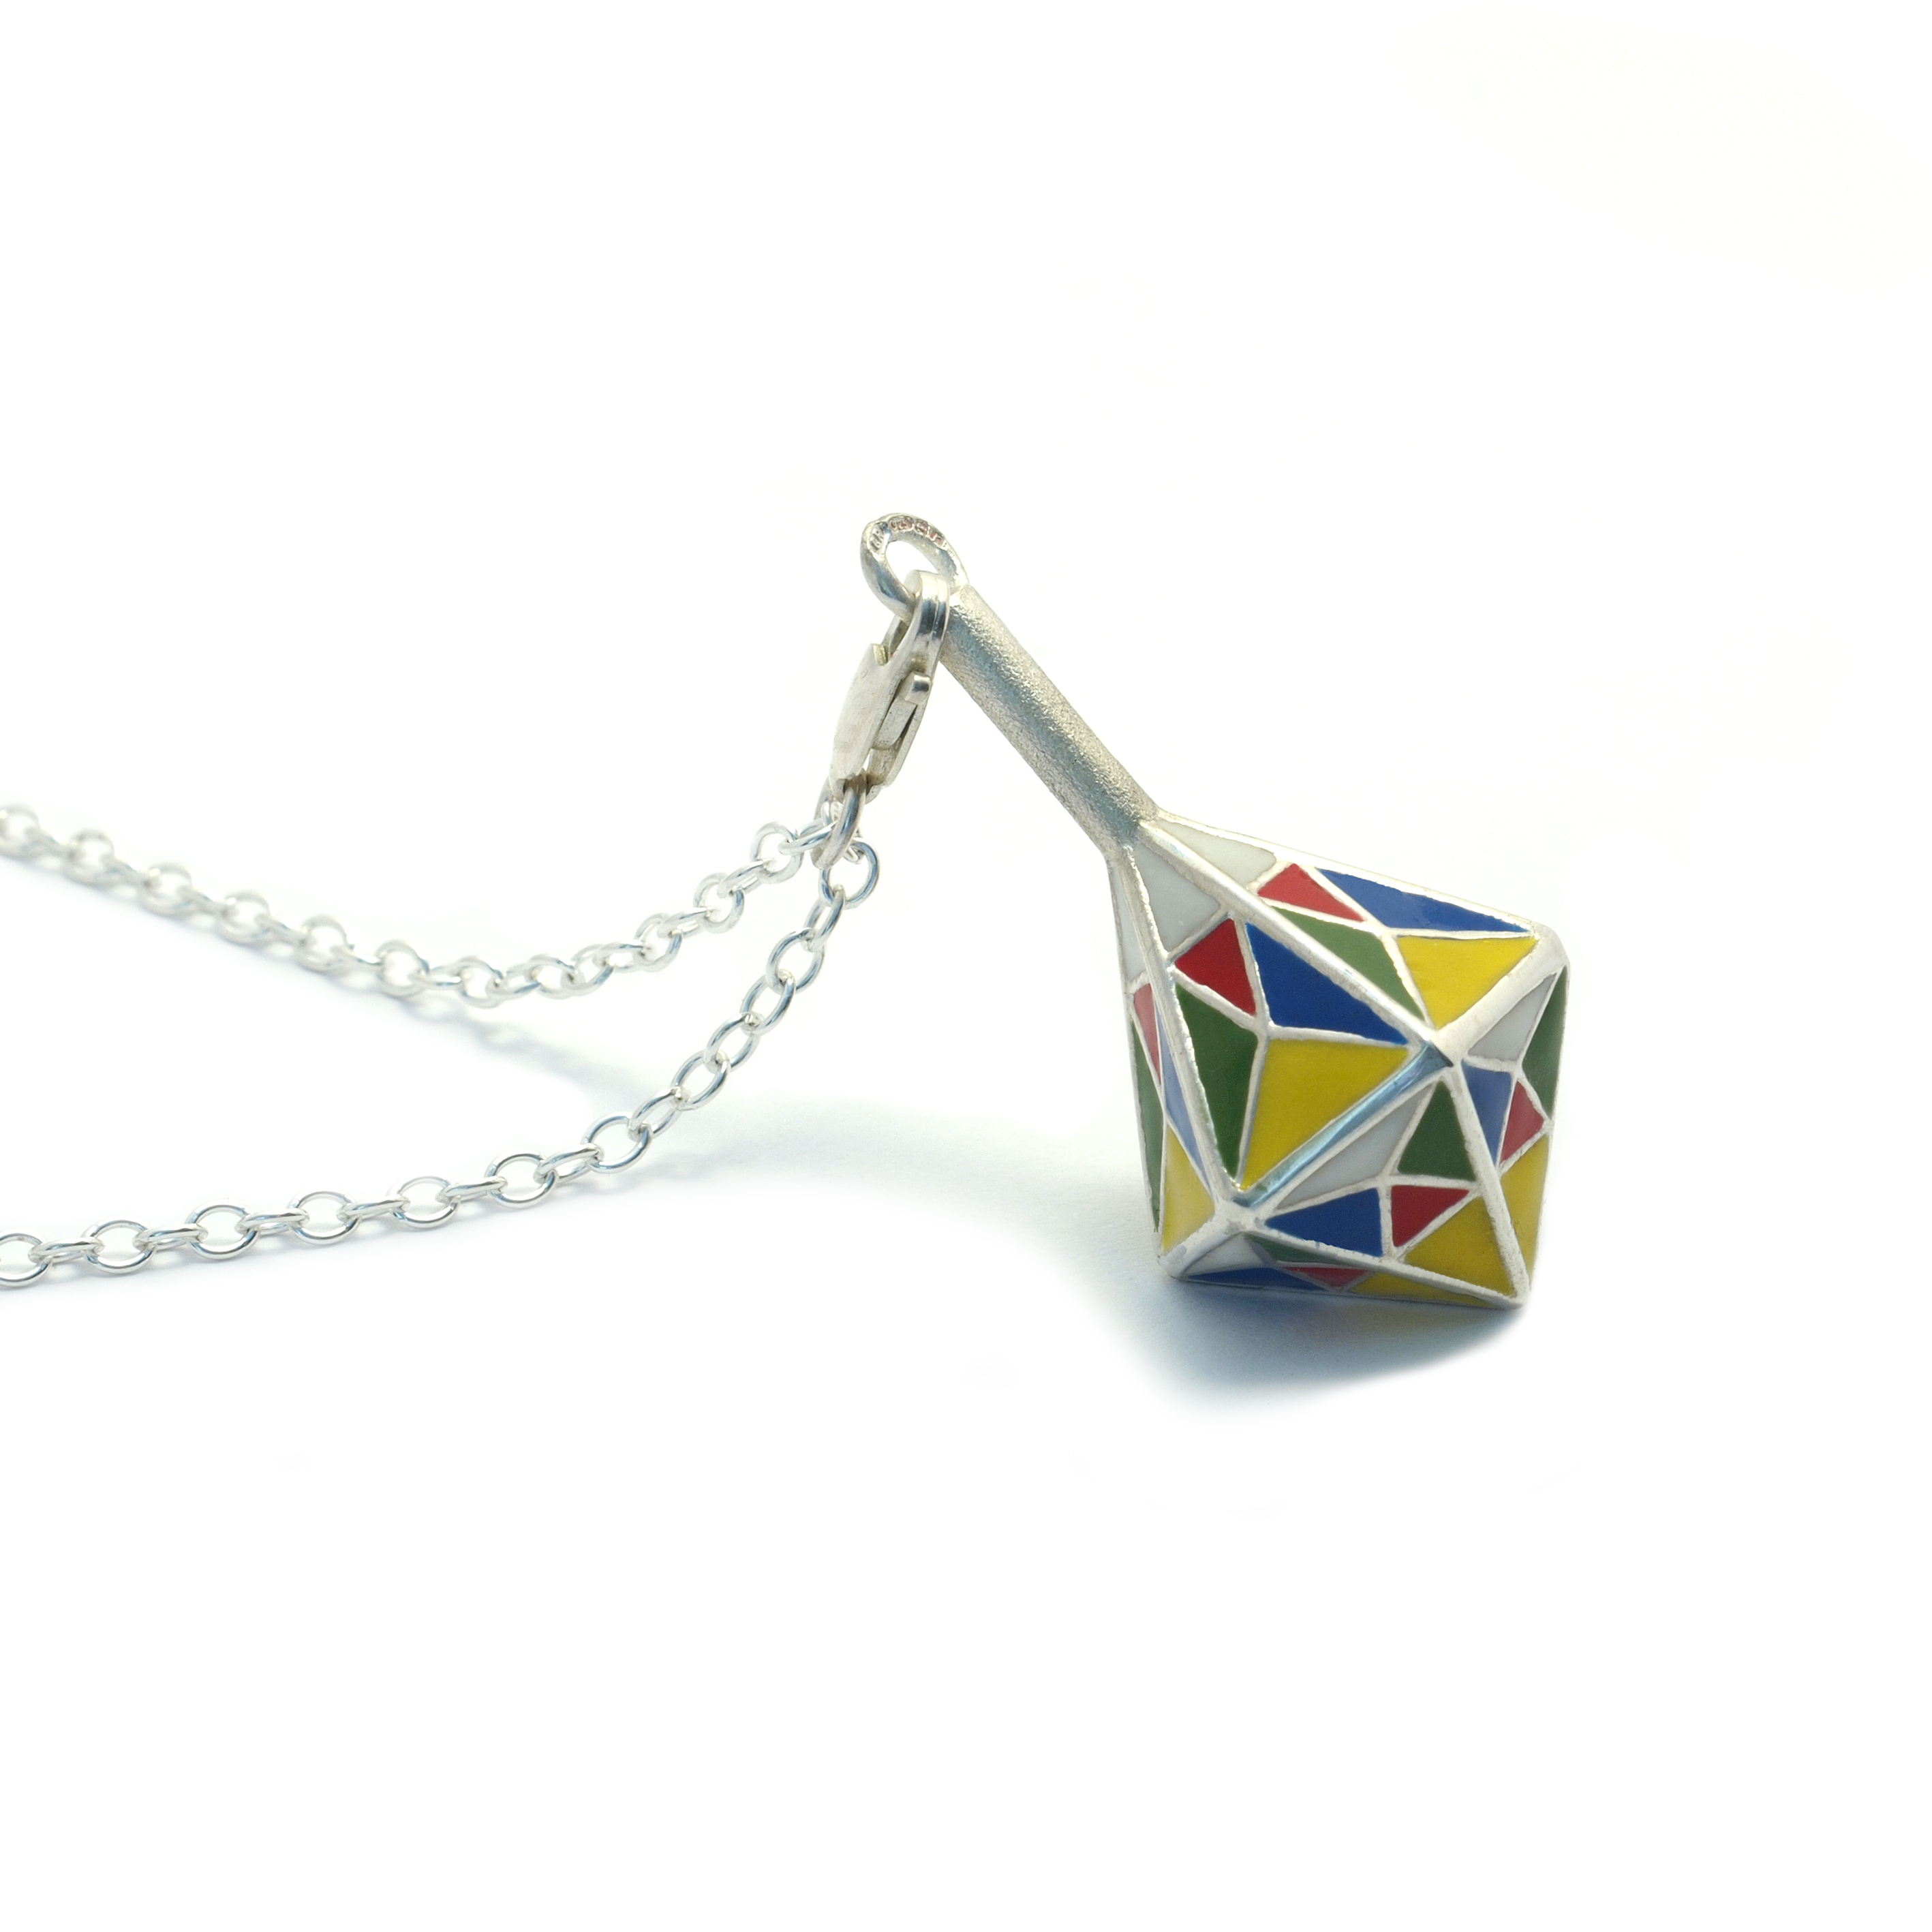 Enamelled spinning top pendant